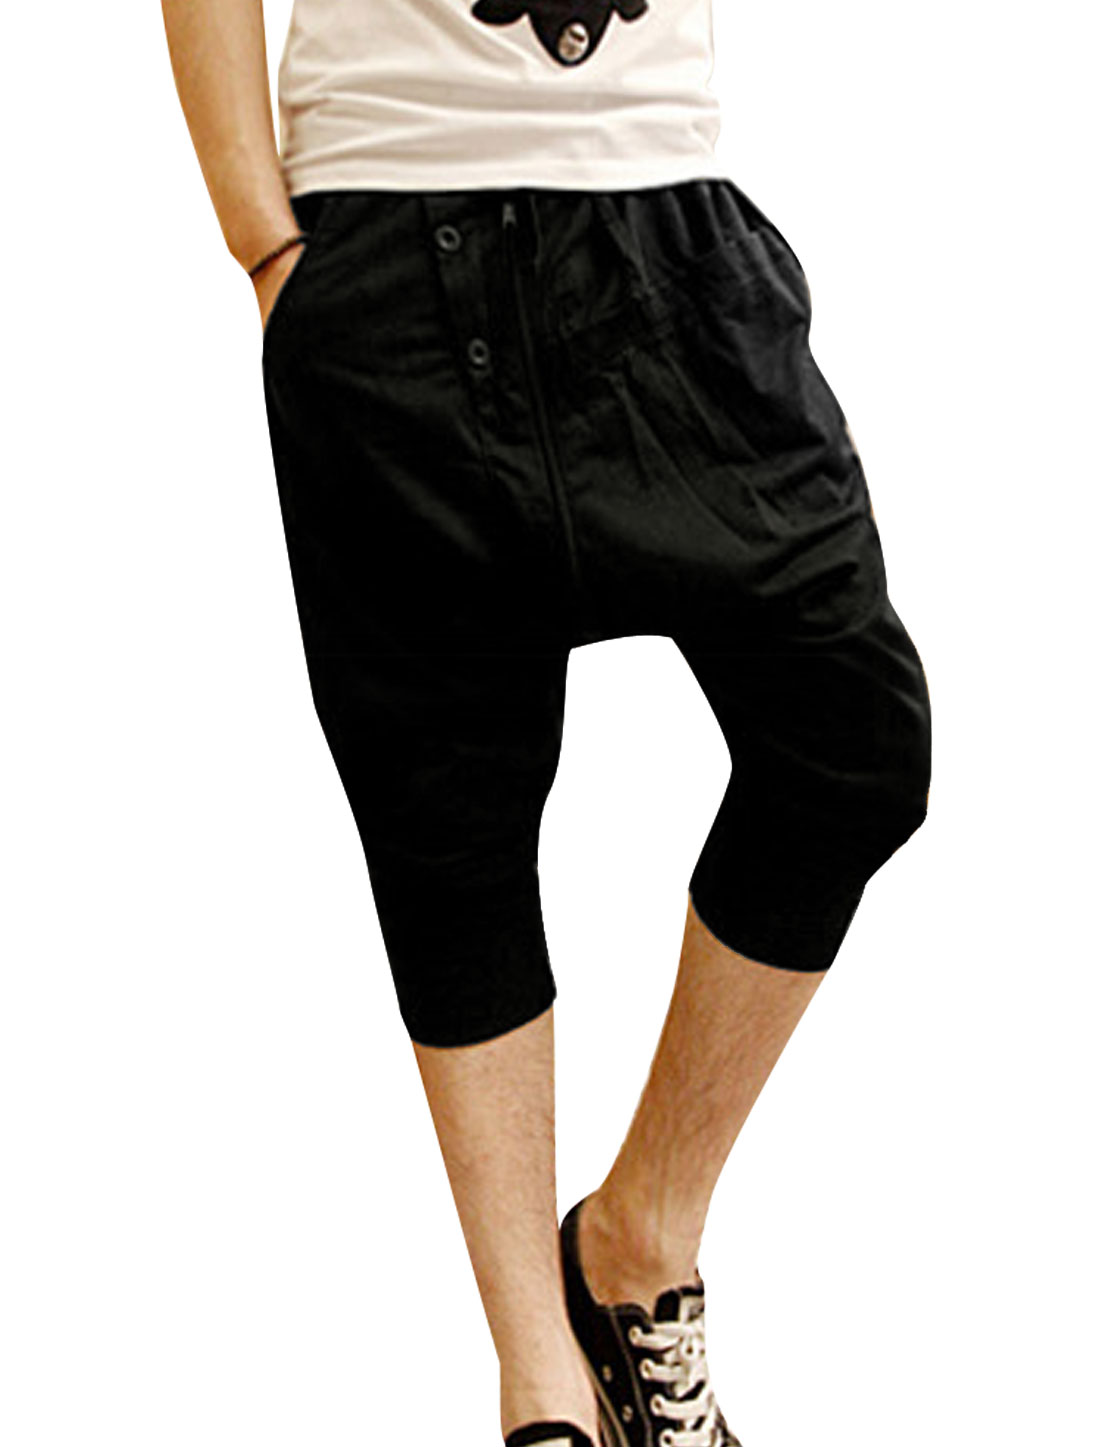 Men Elastic Drawstring Waist Pockets Front Capris Harem Pants Black W30